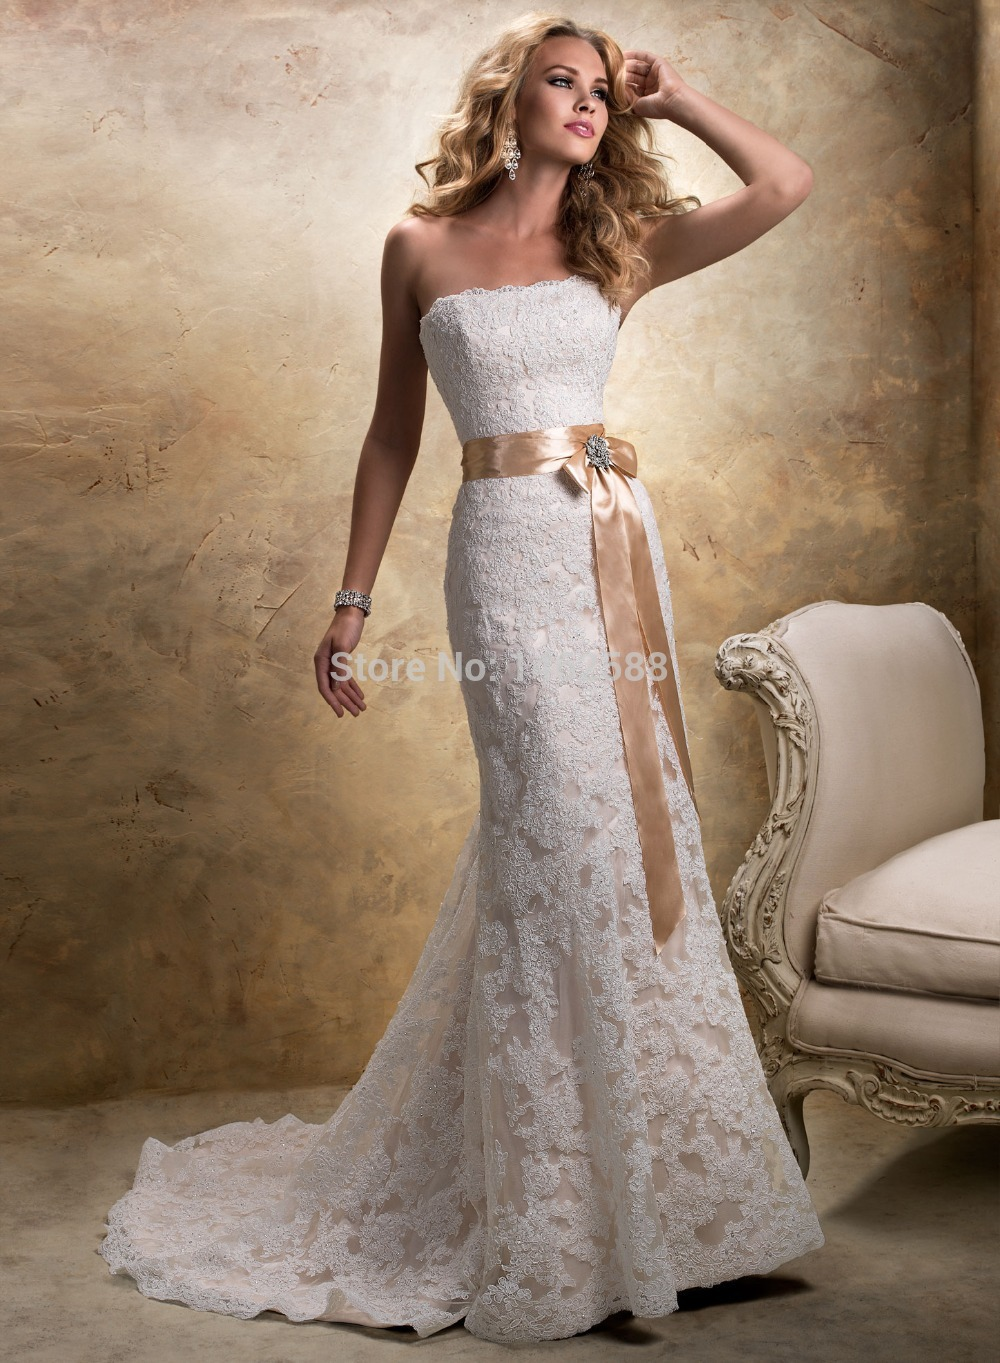 Mermaid style strapless champagne satin sashes lace wedding dress mermaid style strapless champagne satin sashes lace wedding dress mermaid 2015 sexy in wedding dresses from weddings events on aliexpress alibaba ombrellifo Choice Image